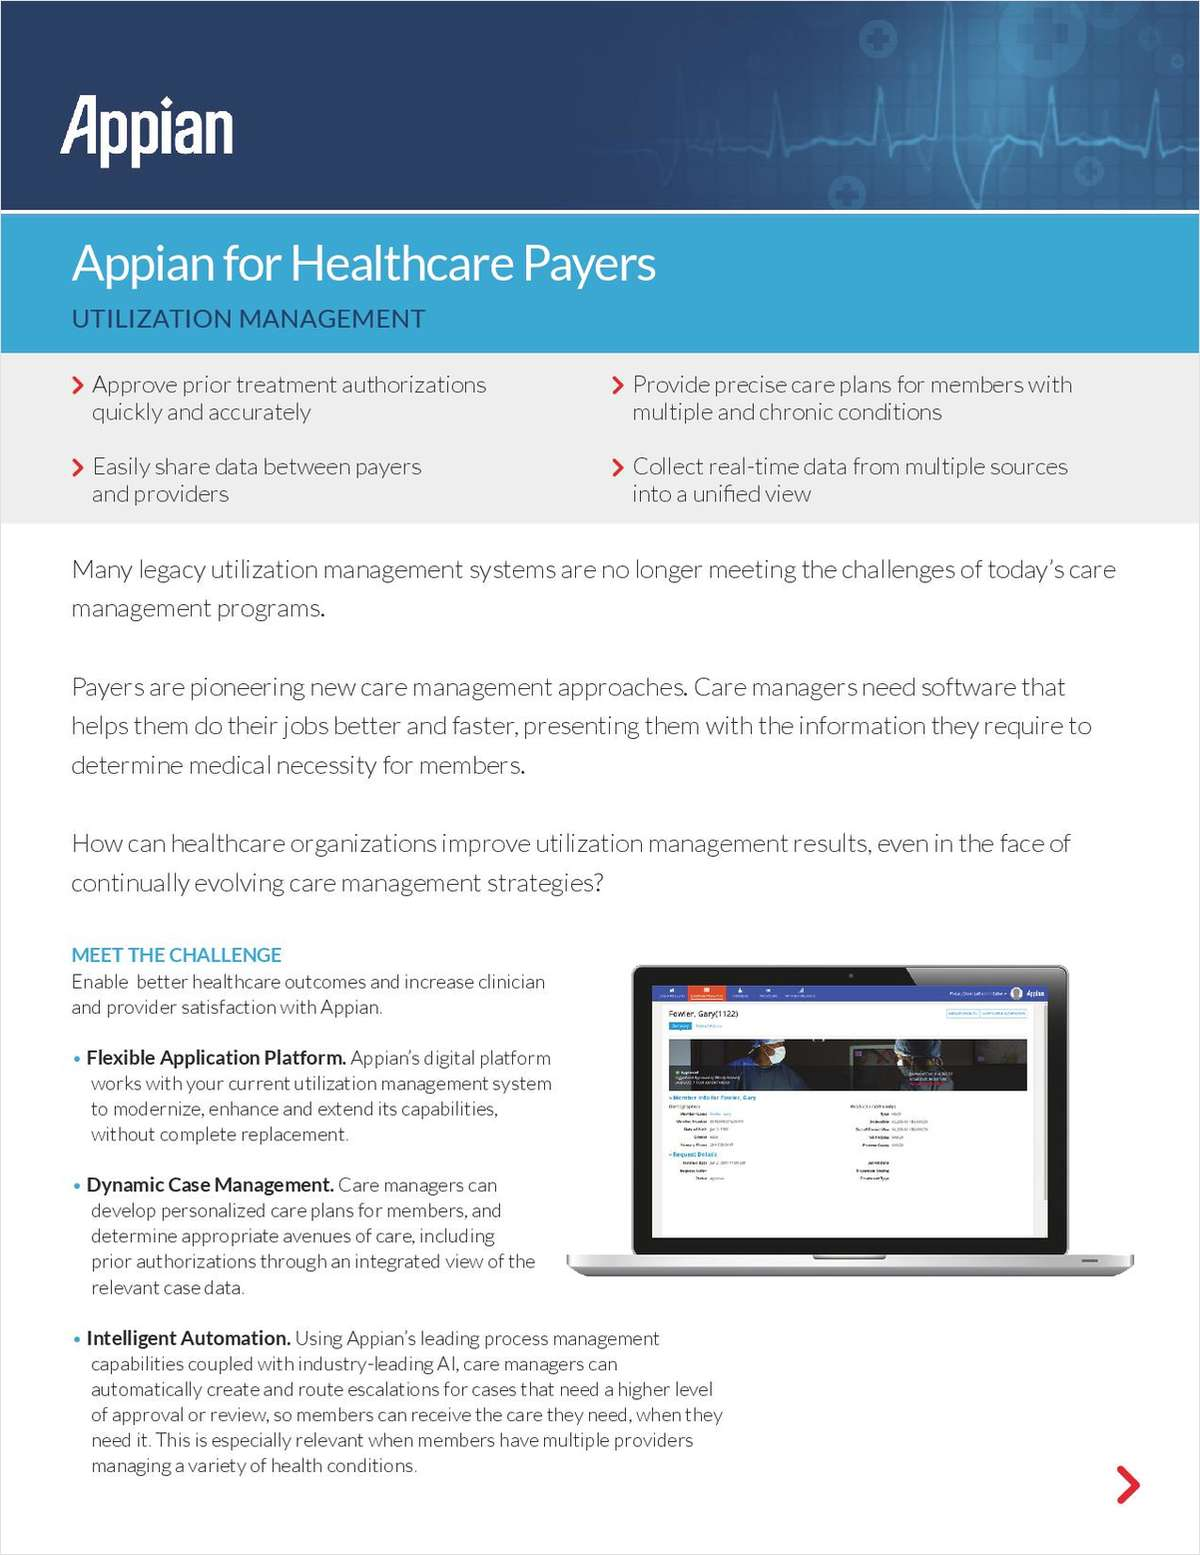 Appian for Healthcare Payers: Utilization Management